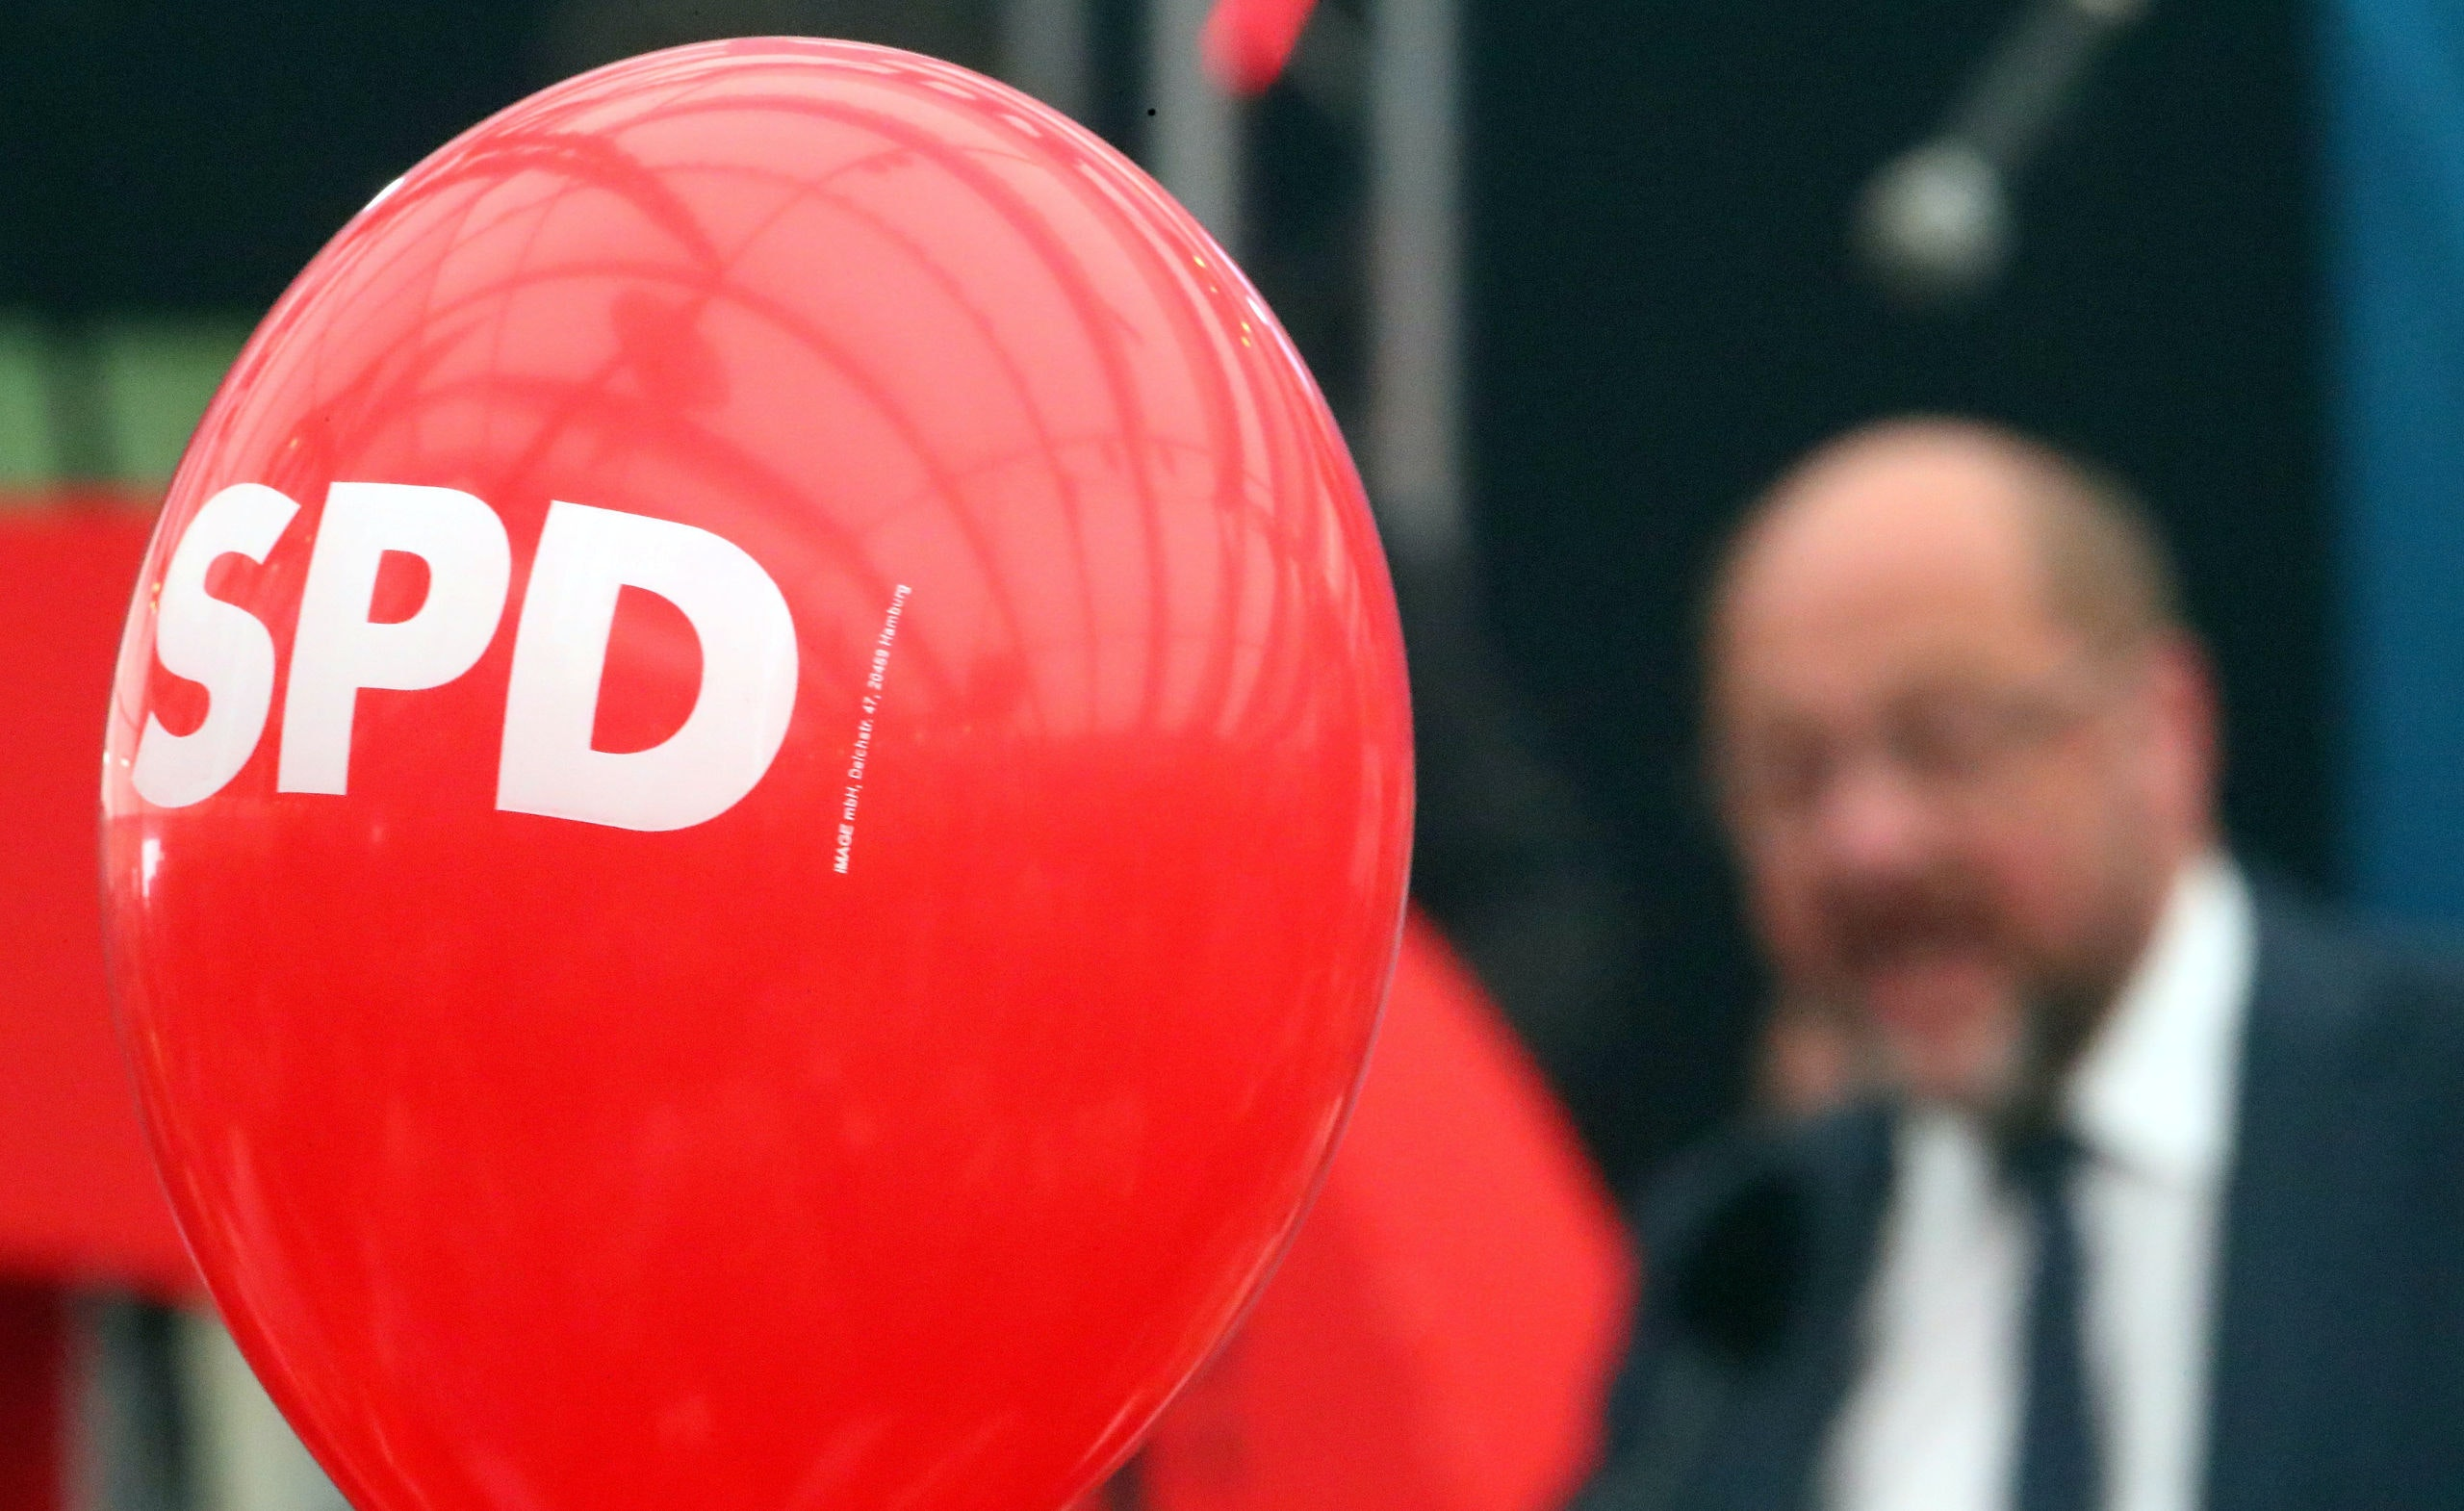 A balloon with the logo of the Social Democratic Party (SPD) is seen as Martin Schulz, top candidate of SPD for the upcoming federal election, gives a speech during an election rally at one of Bavaria's oldest fairs, the Gillamoos Fair in Abensberg, Germany, September 4, 2017.   REUTERS/Michael Dalder - RC1FACF2B540